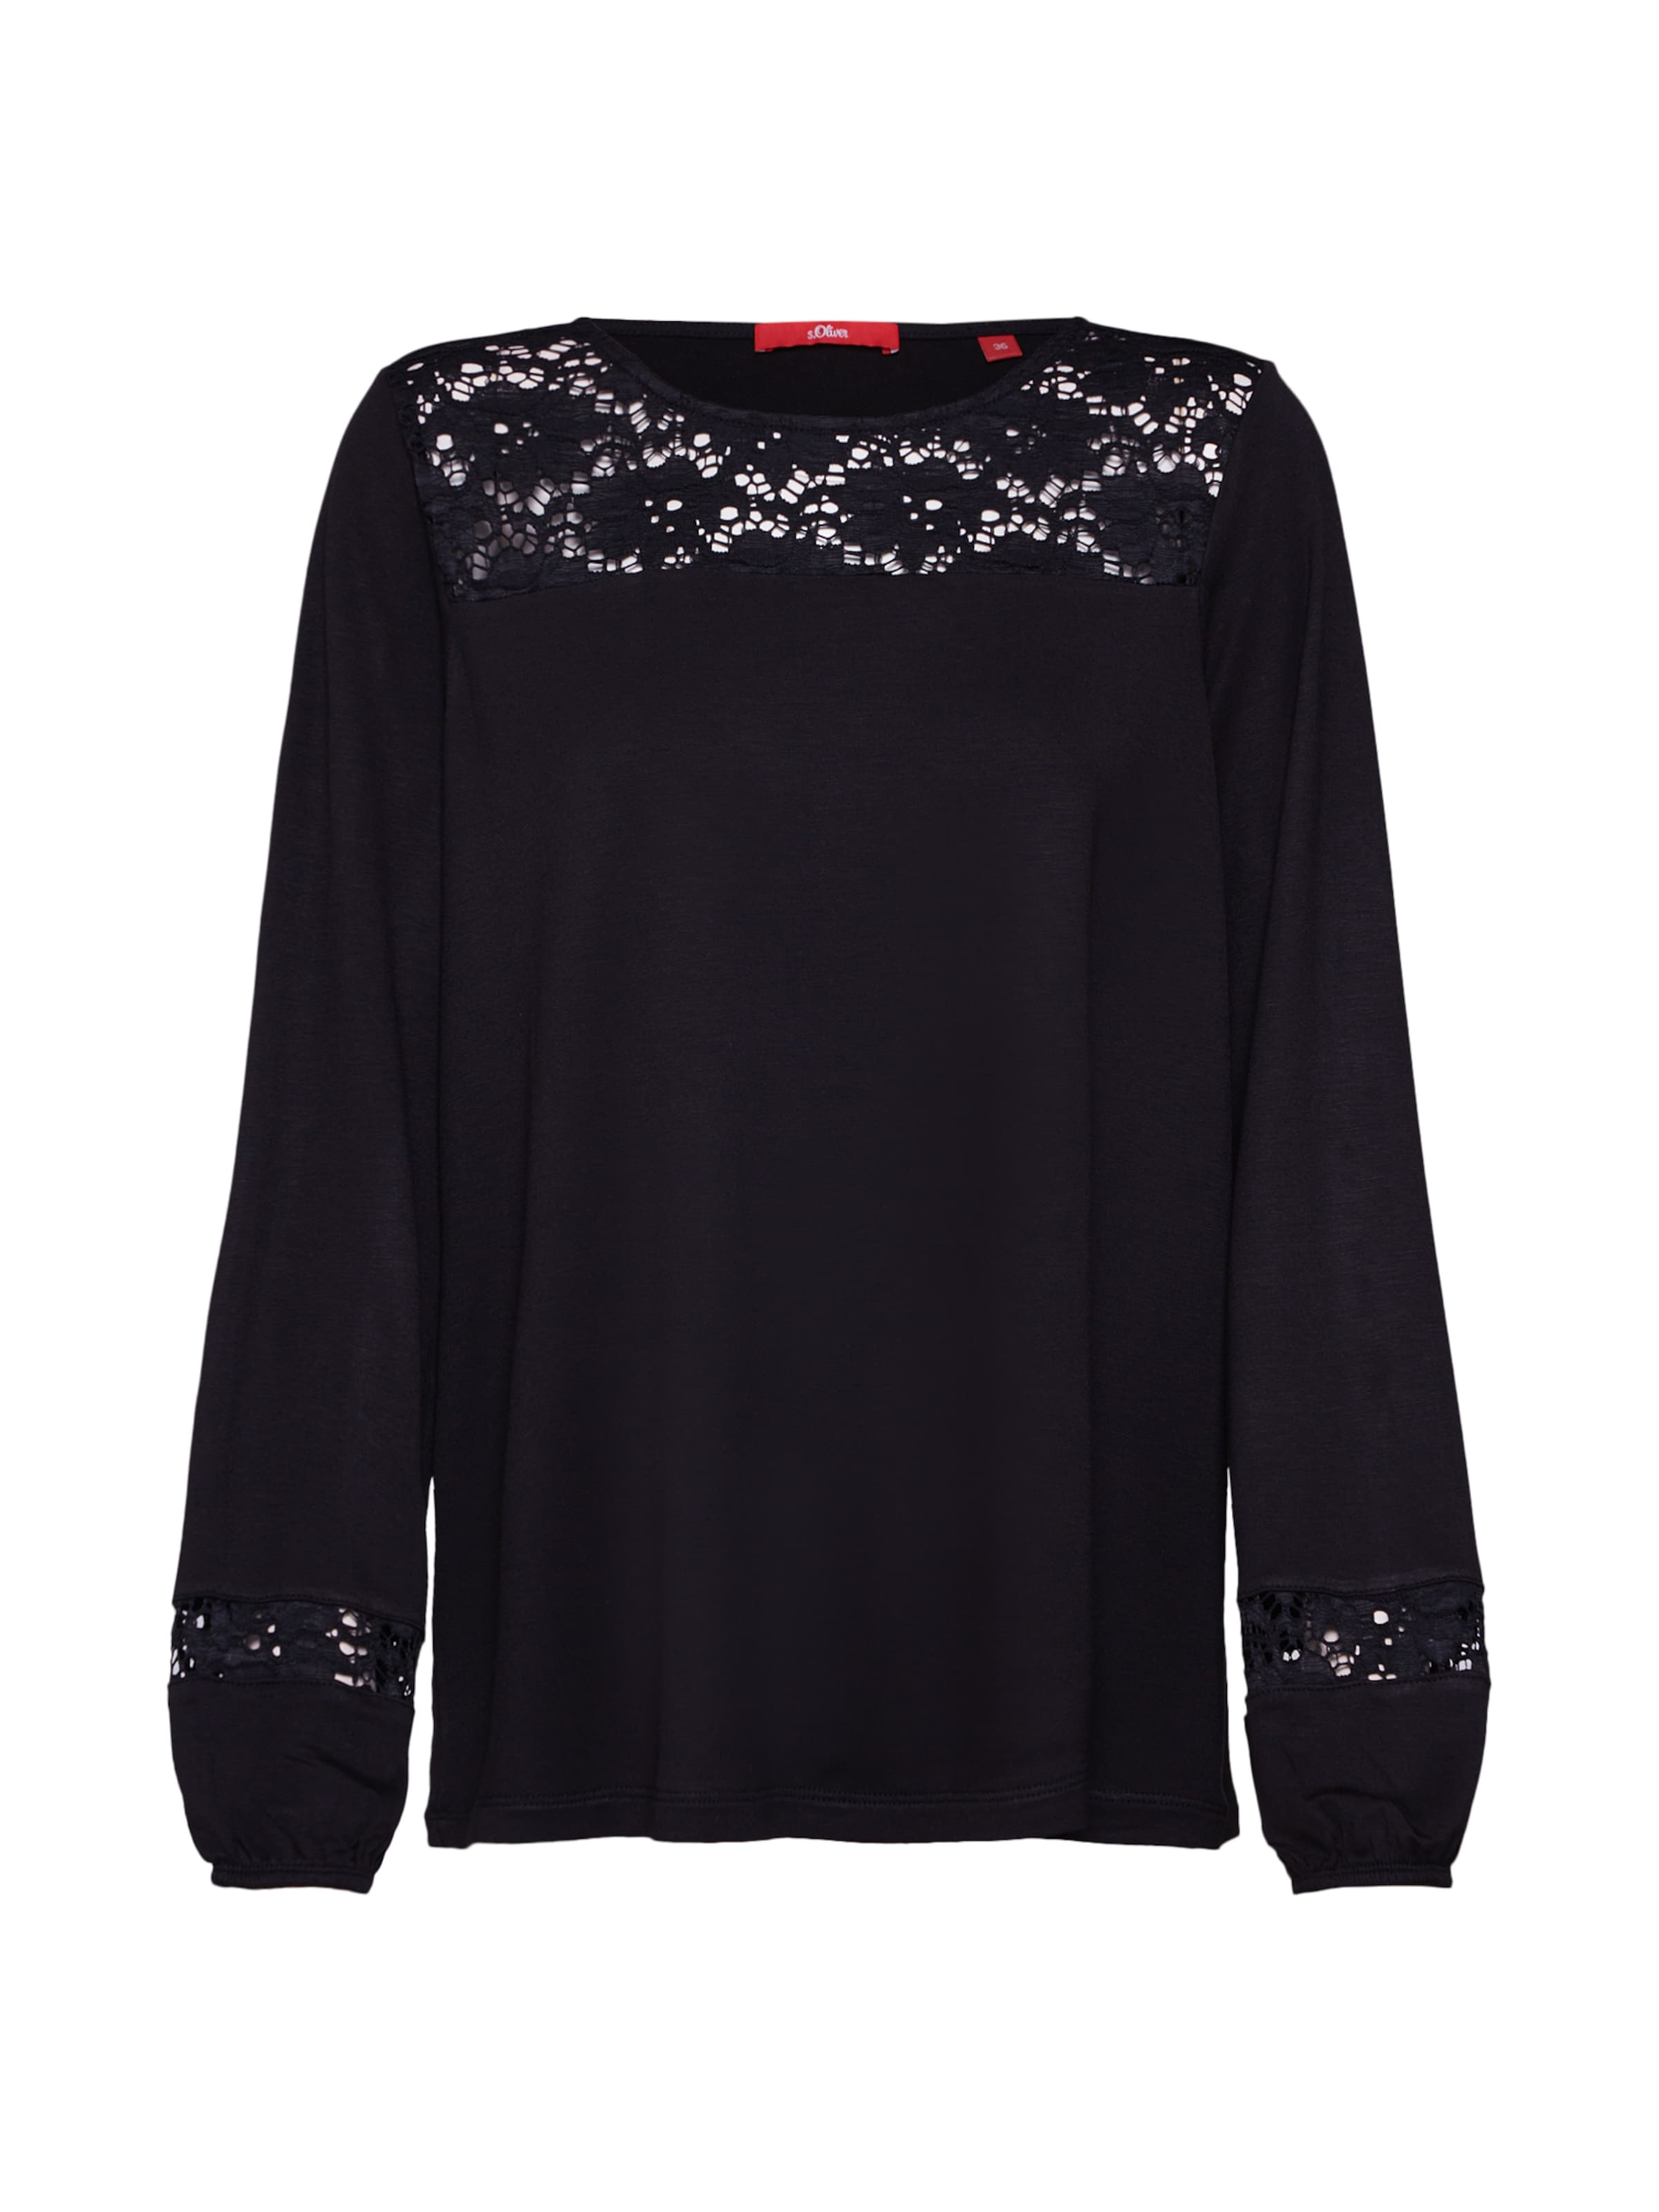 T Label shirt S Noir En oliver Red QrWCxodBe